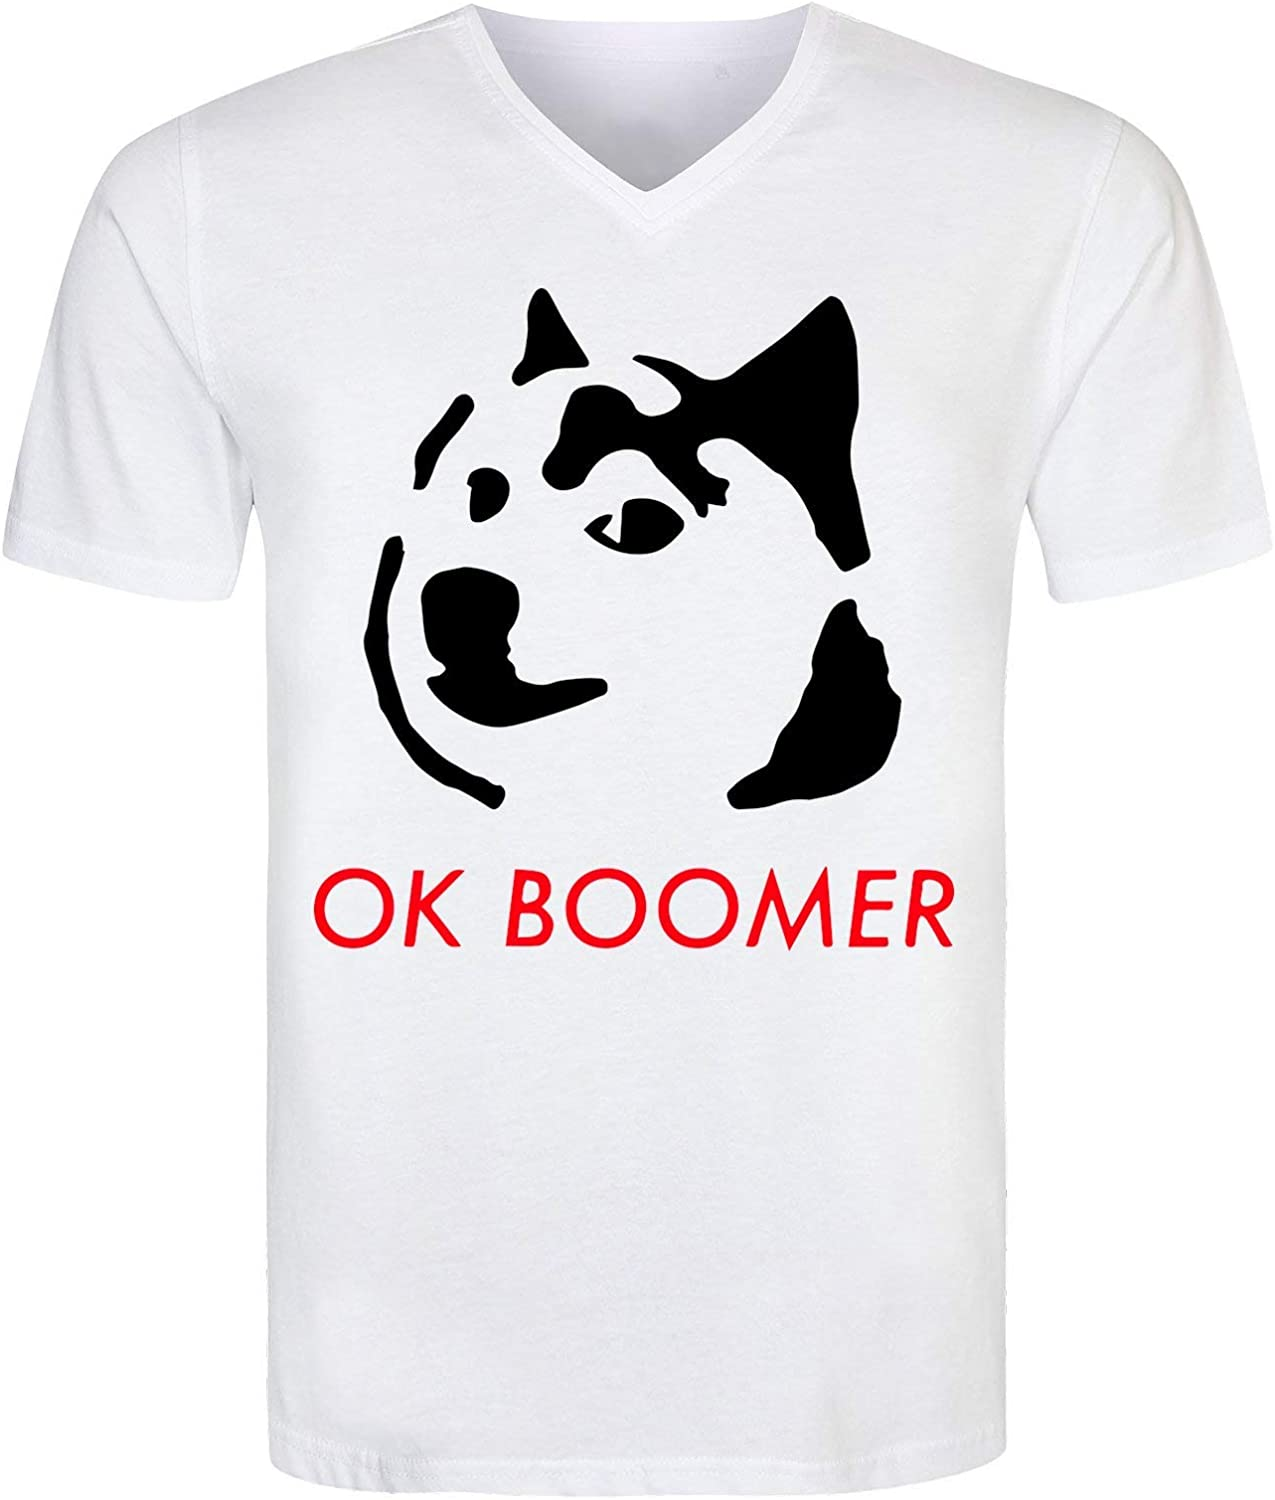 KRISSY Ok Boomer Doge Dog Mens T-Shirt V Neck Hombre Camiseta: Amazon.es: Ropa y accesorios